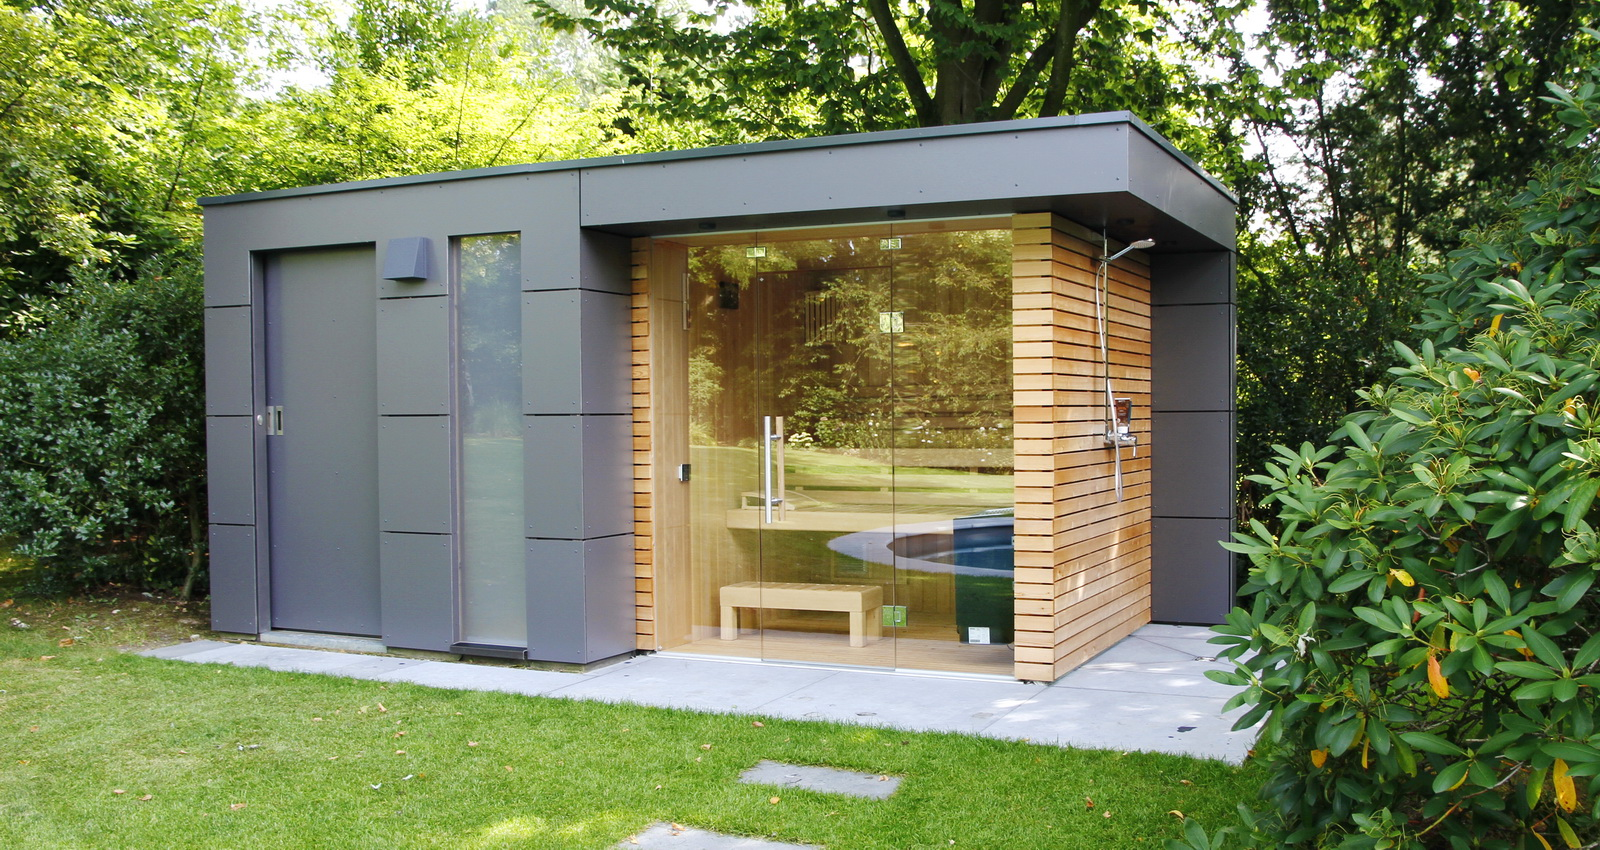 design gartenhaus moderne gartenh user schicke gartensauna. Black Bedroom Furniture Sets. Home Design Ideas